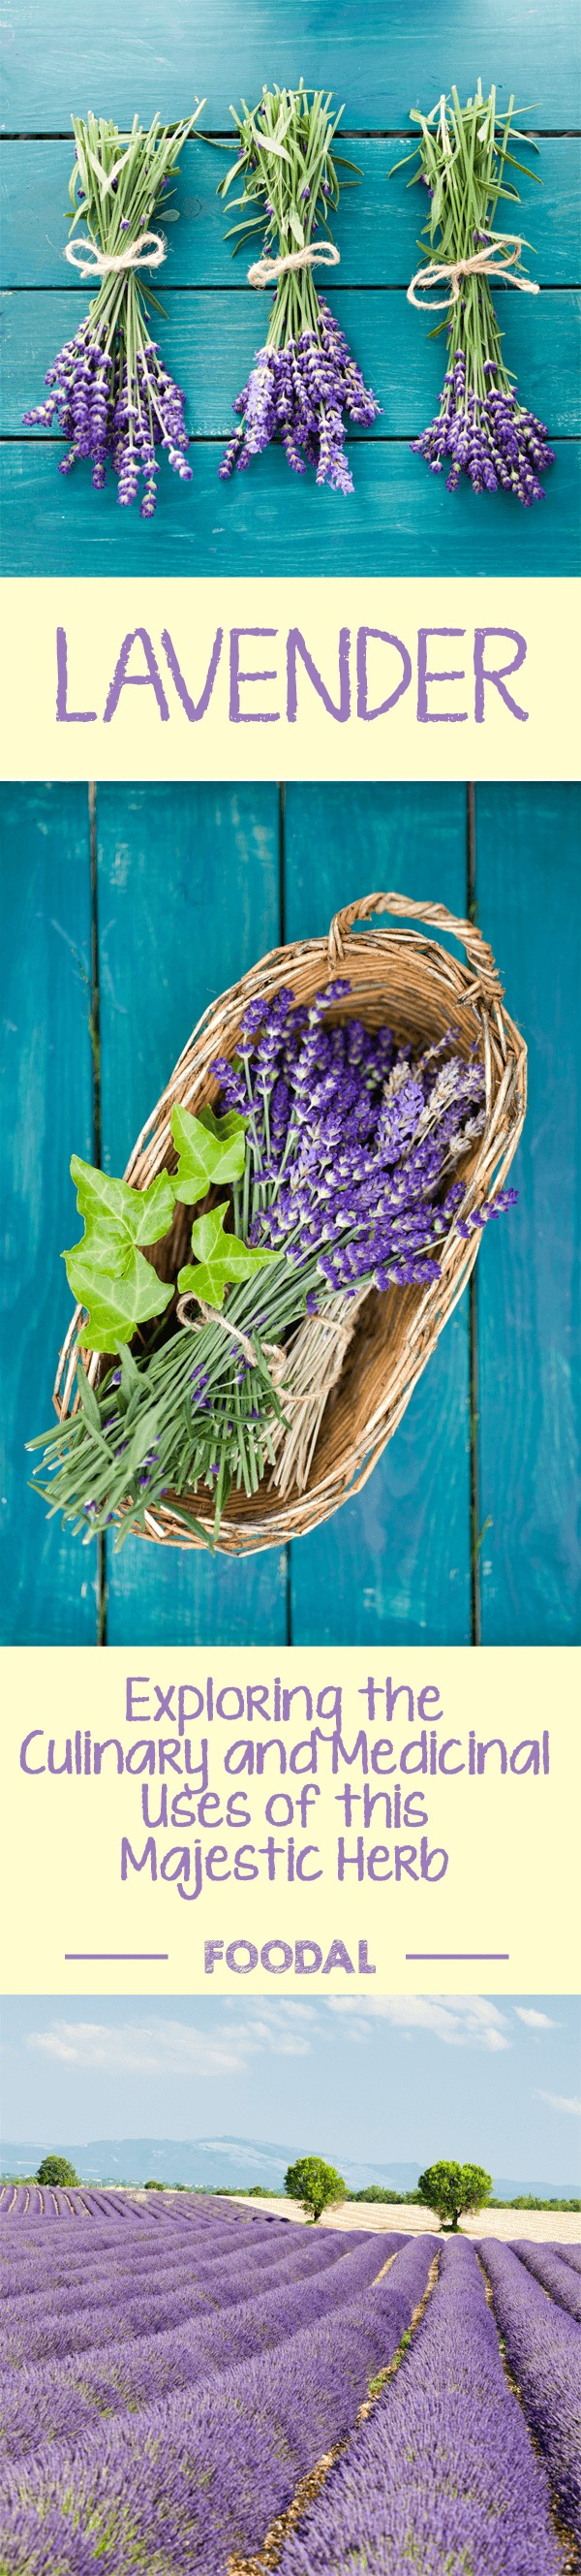 Did you know you can use lavender in your cooking? The wonderful scent and flavor of this Mediterranean flower will provide both sweet and savory recipes with a new twist. To find out how to add this fragrant flower to your own culinary creations, read more now on Foodal. https://foodal.com/knowledge/herbs-spices/lavender-a-beautiful-and-versatile-herb/